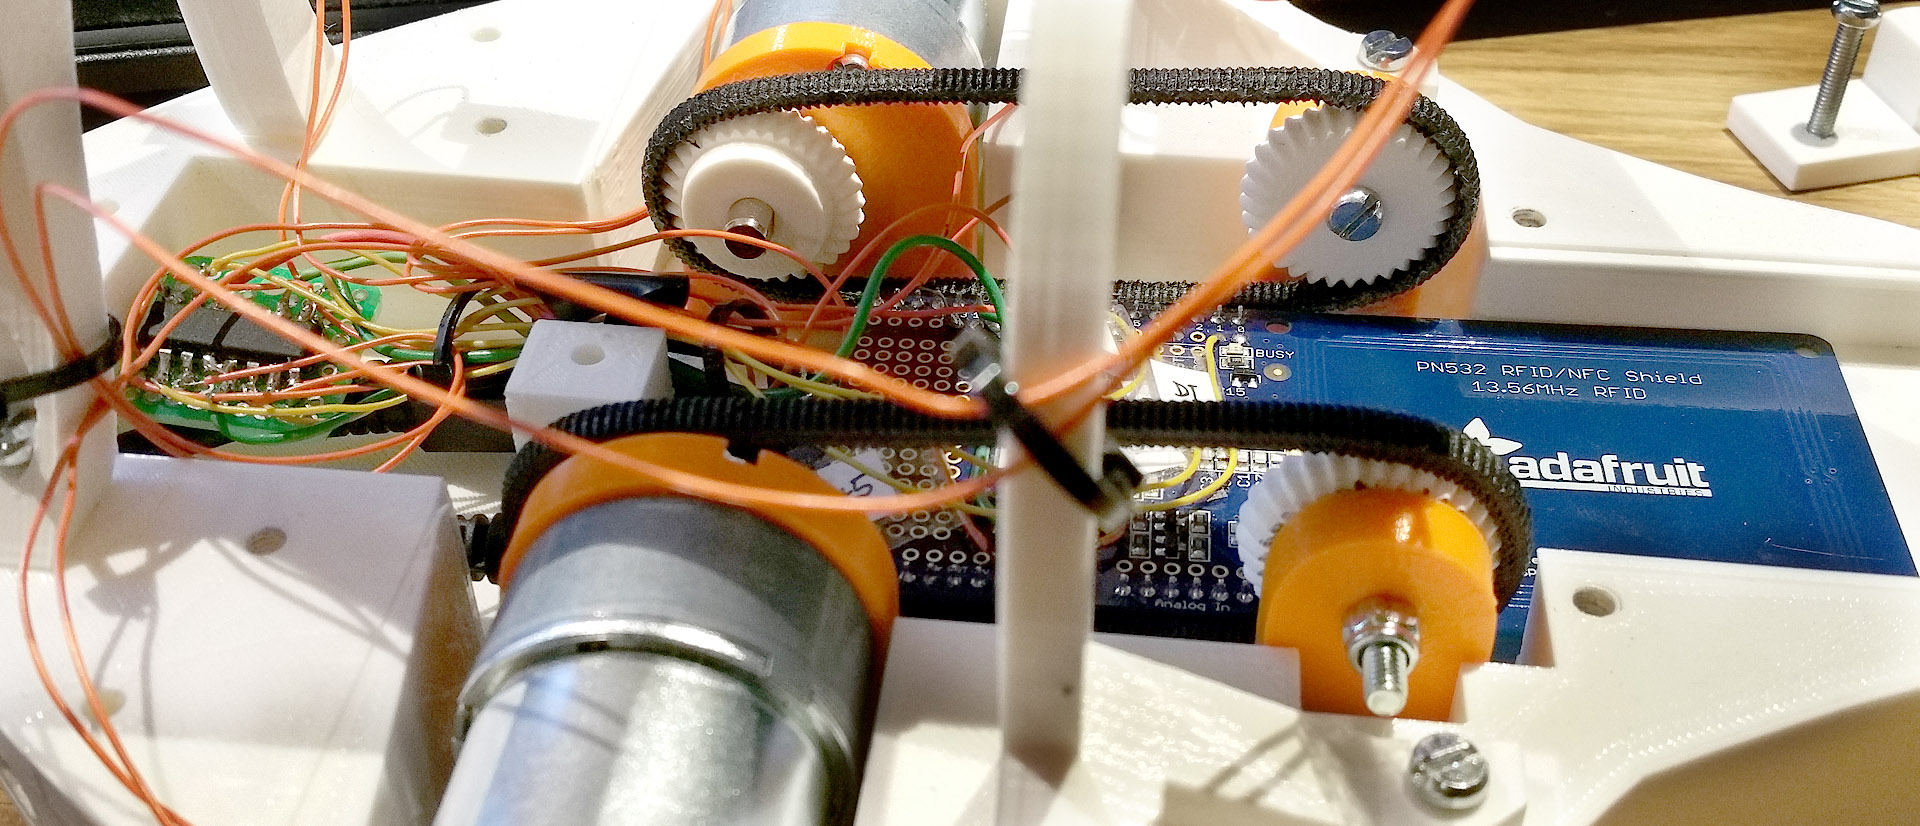 Inside 3d printed Cat Feeder Arduino electronics